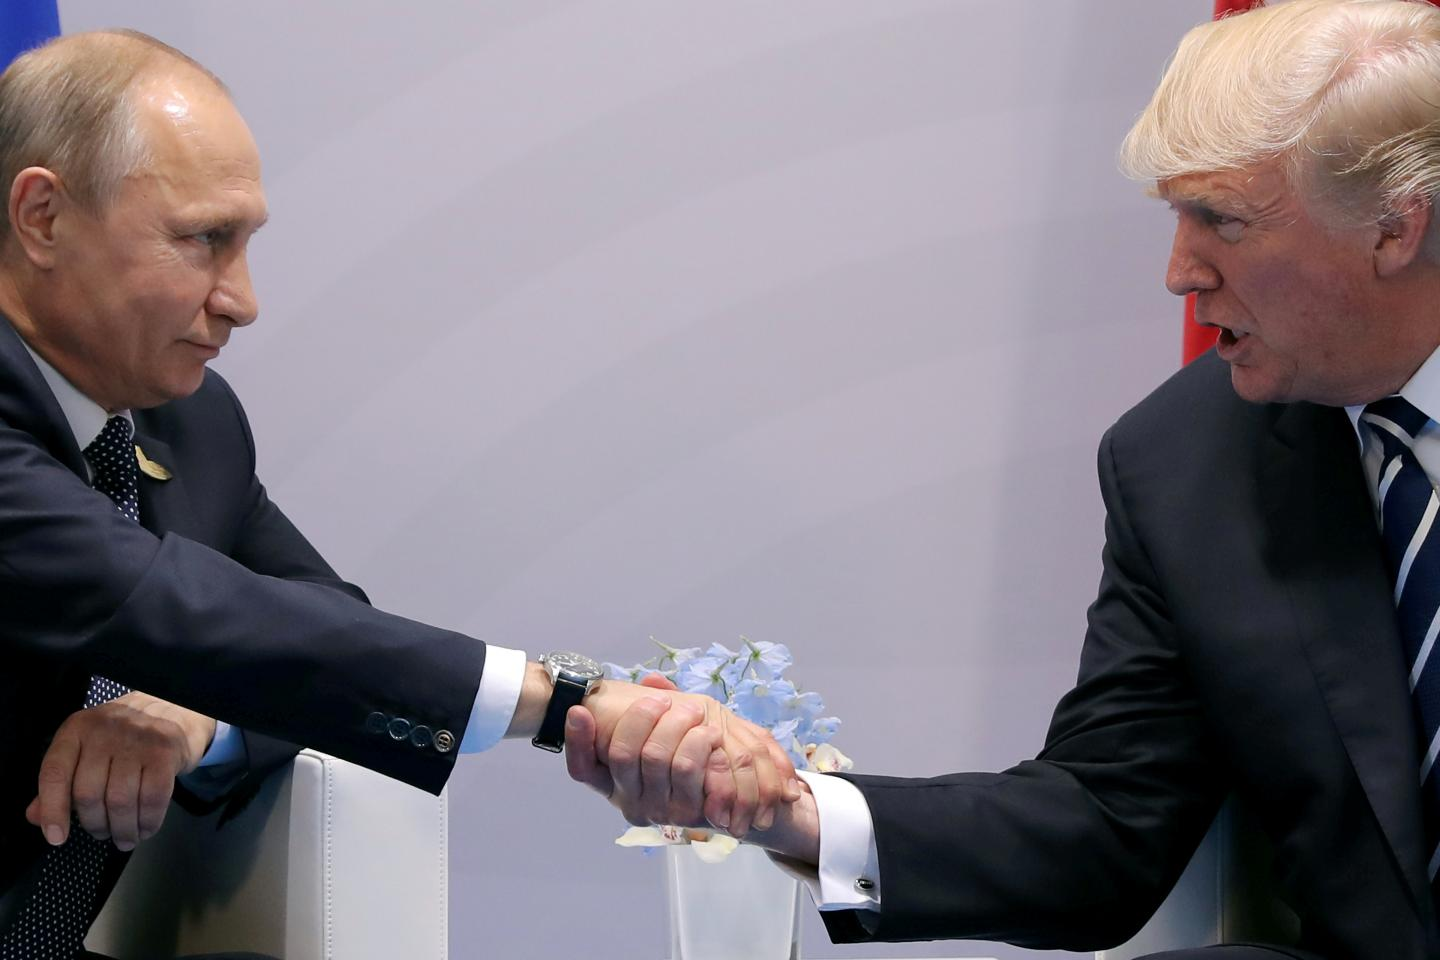 Putin and Trump discussed arms control, Iran in phone call